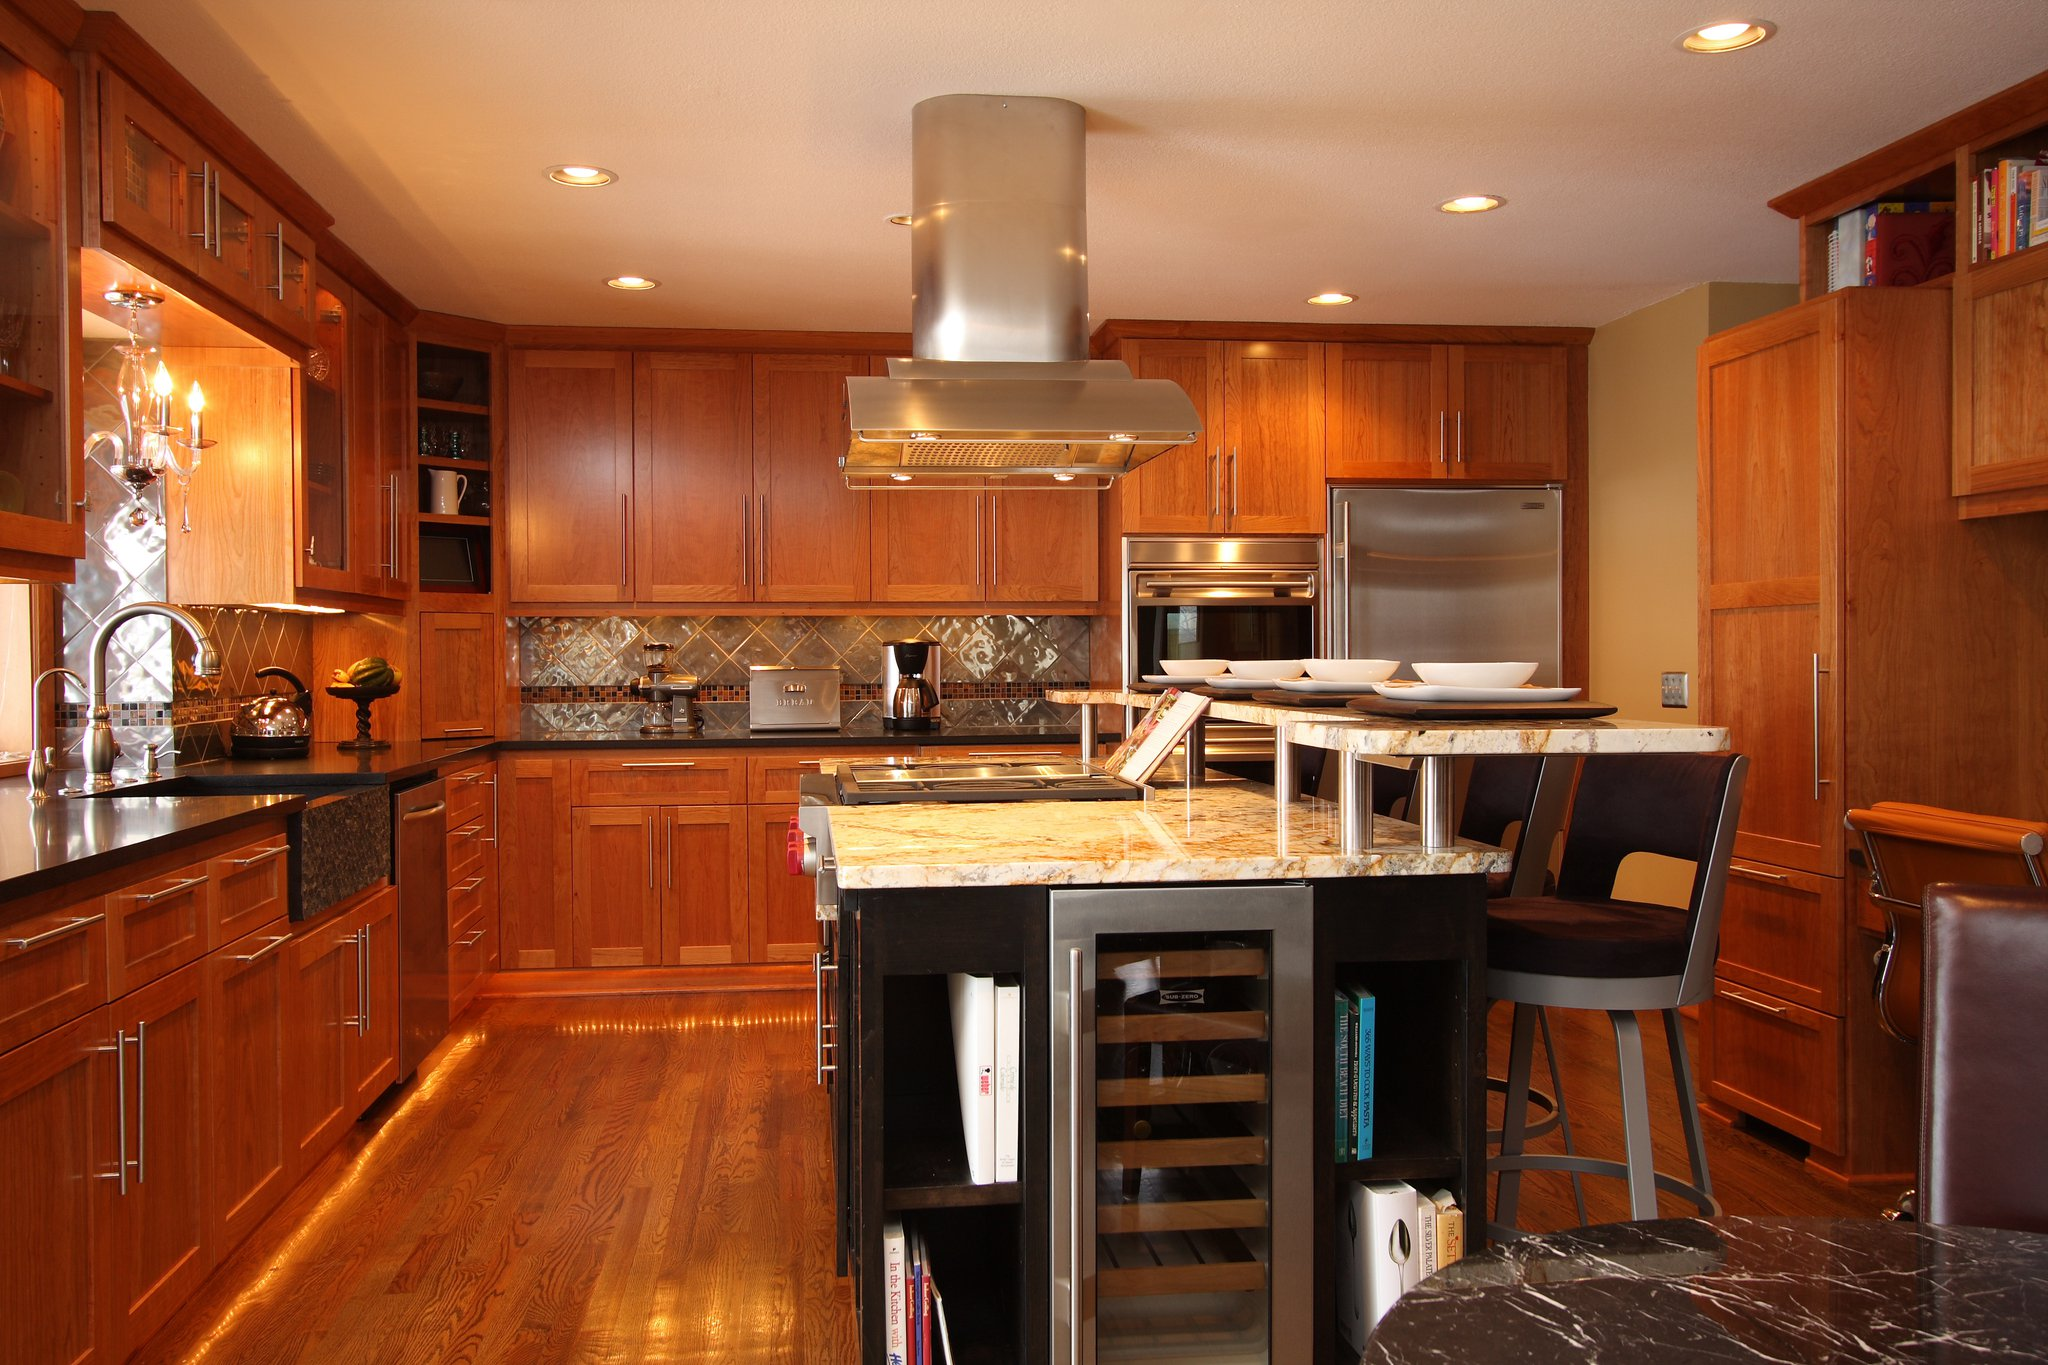 mn custom kitchen cabinets and countertops custom kitchen island custom kitchen islands The Kitchen Island Custom